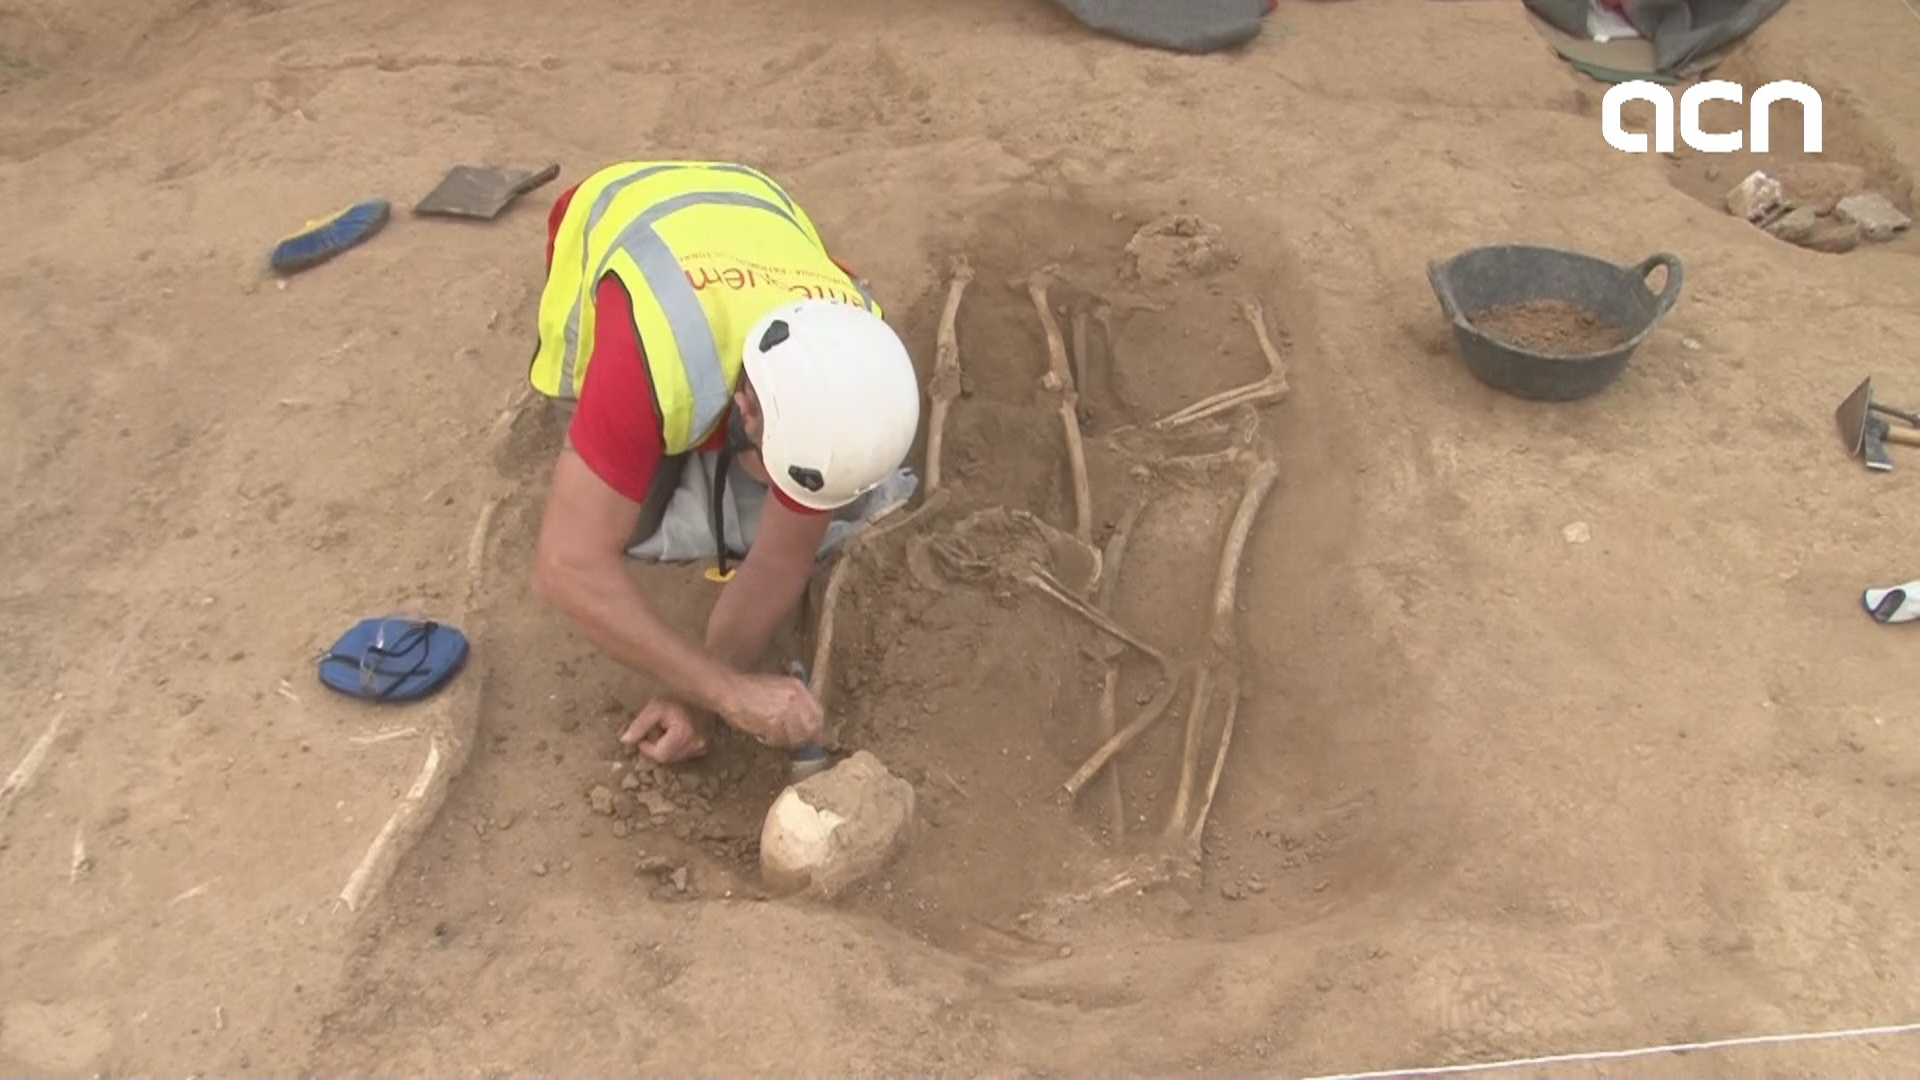 Archaeologists uncover uncover more 17th century bodies at site of future train station